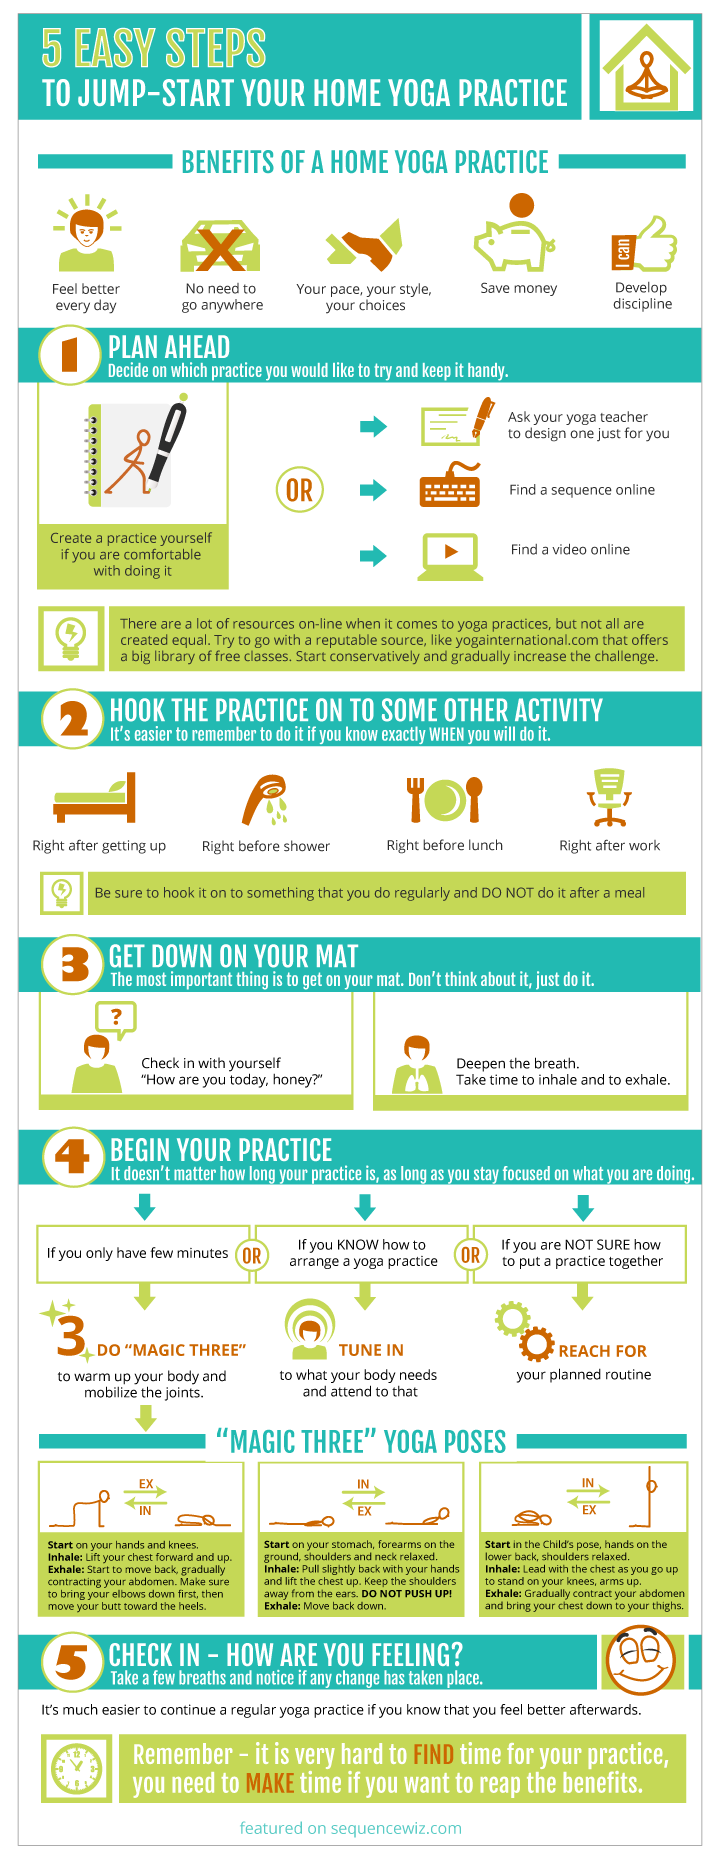 Home Yoga Practice Infographic